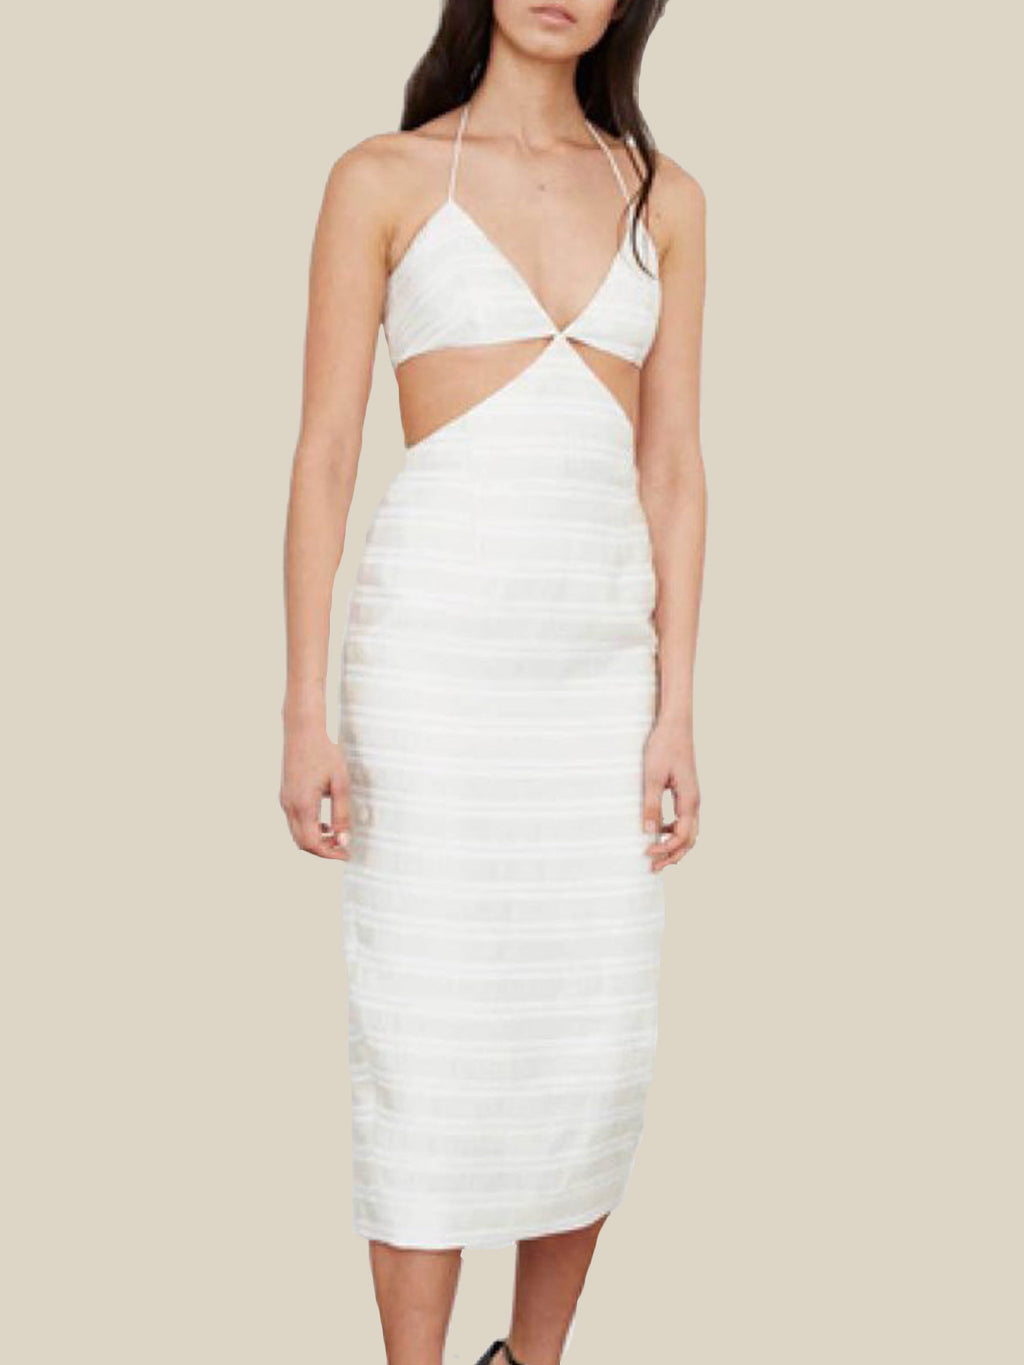 mlm label palm midi dress